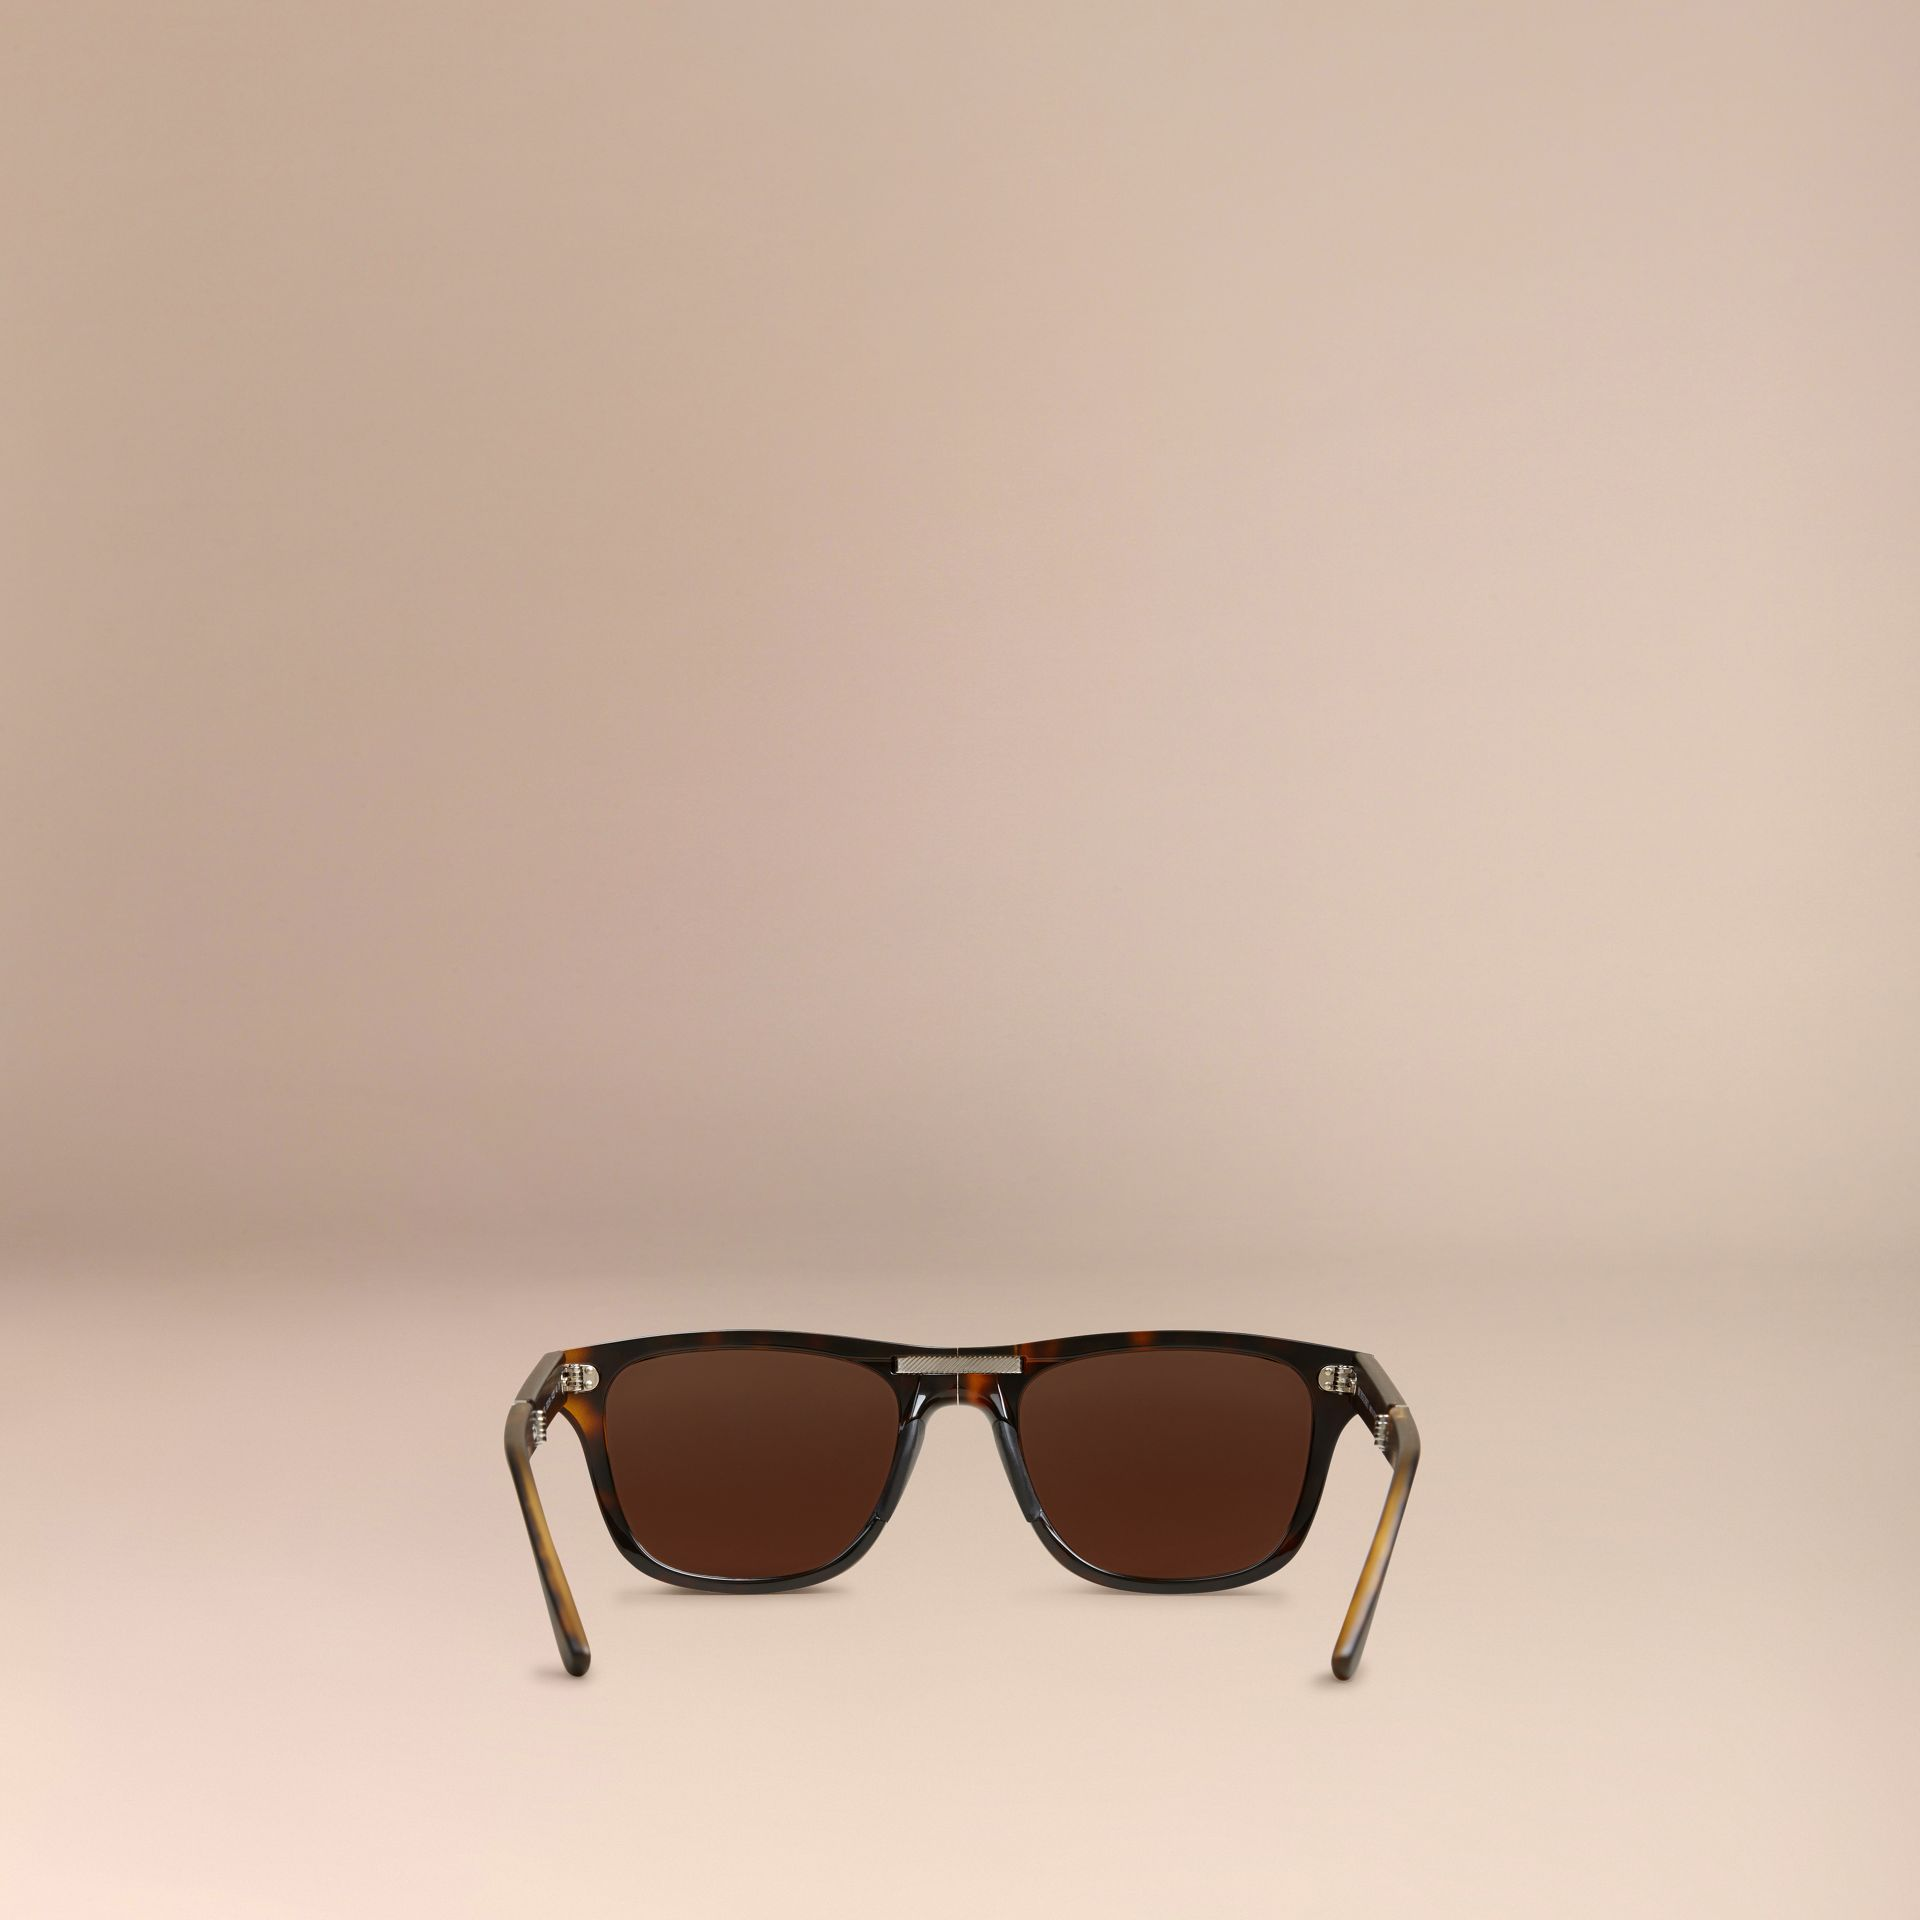 Folding Rectangular Frame Sunglasses in Dark Brown - Men | Burberry Hong Kong - gallery image 3